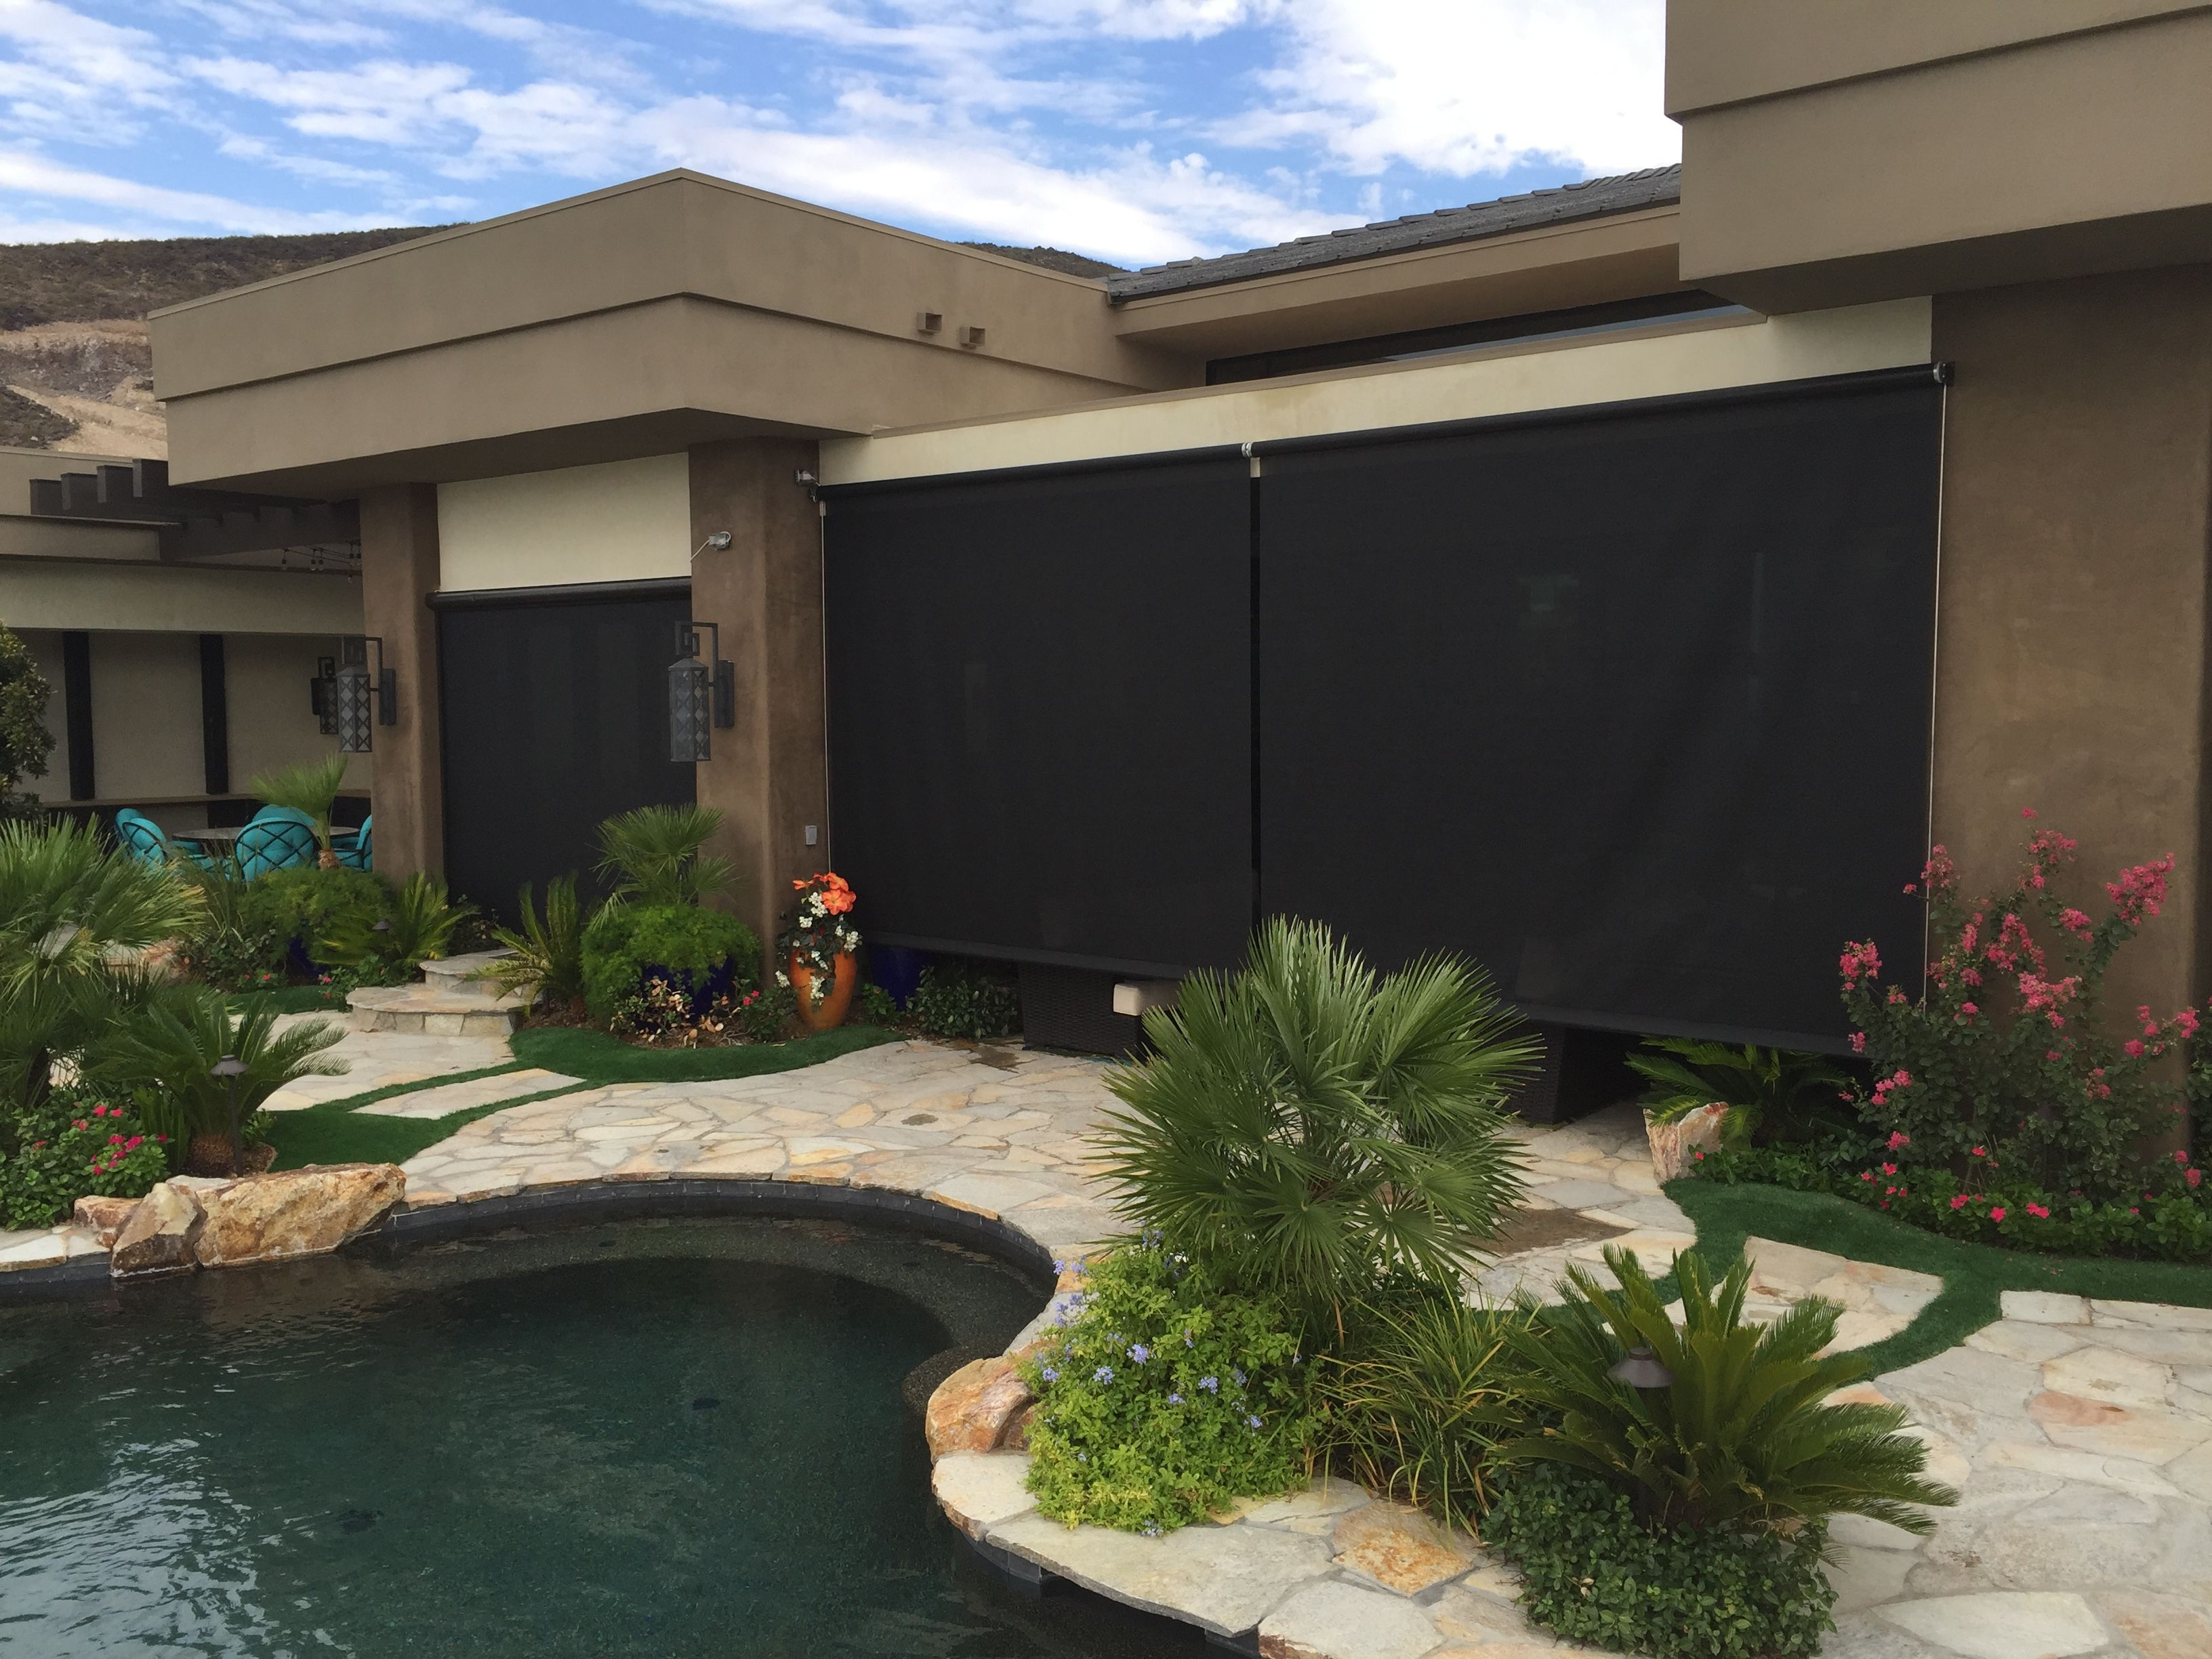 retractable screen patio. Make A Statement With Retractable Screen Combo! Patio